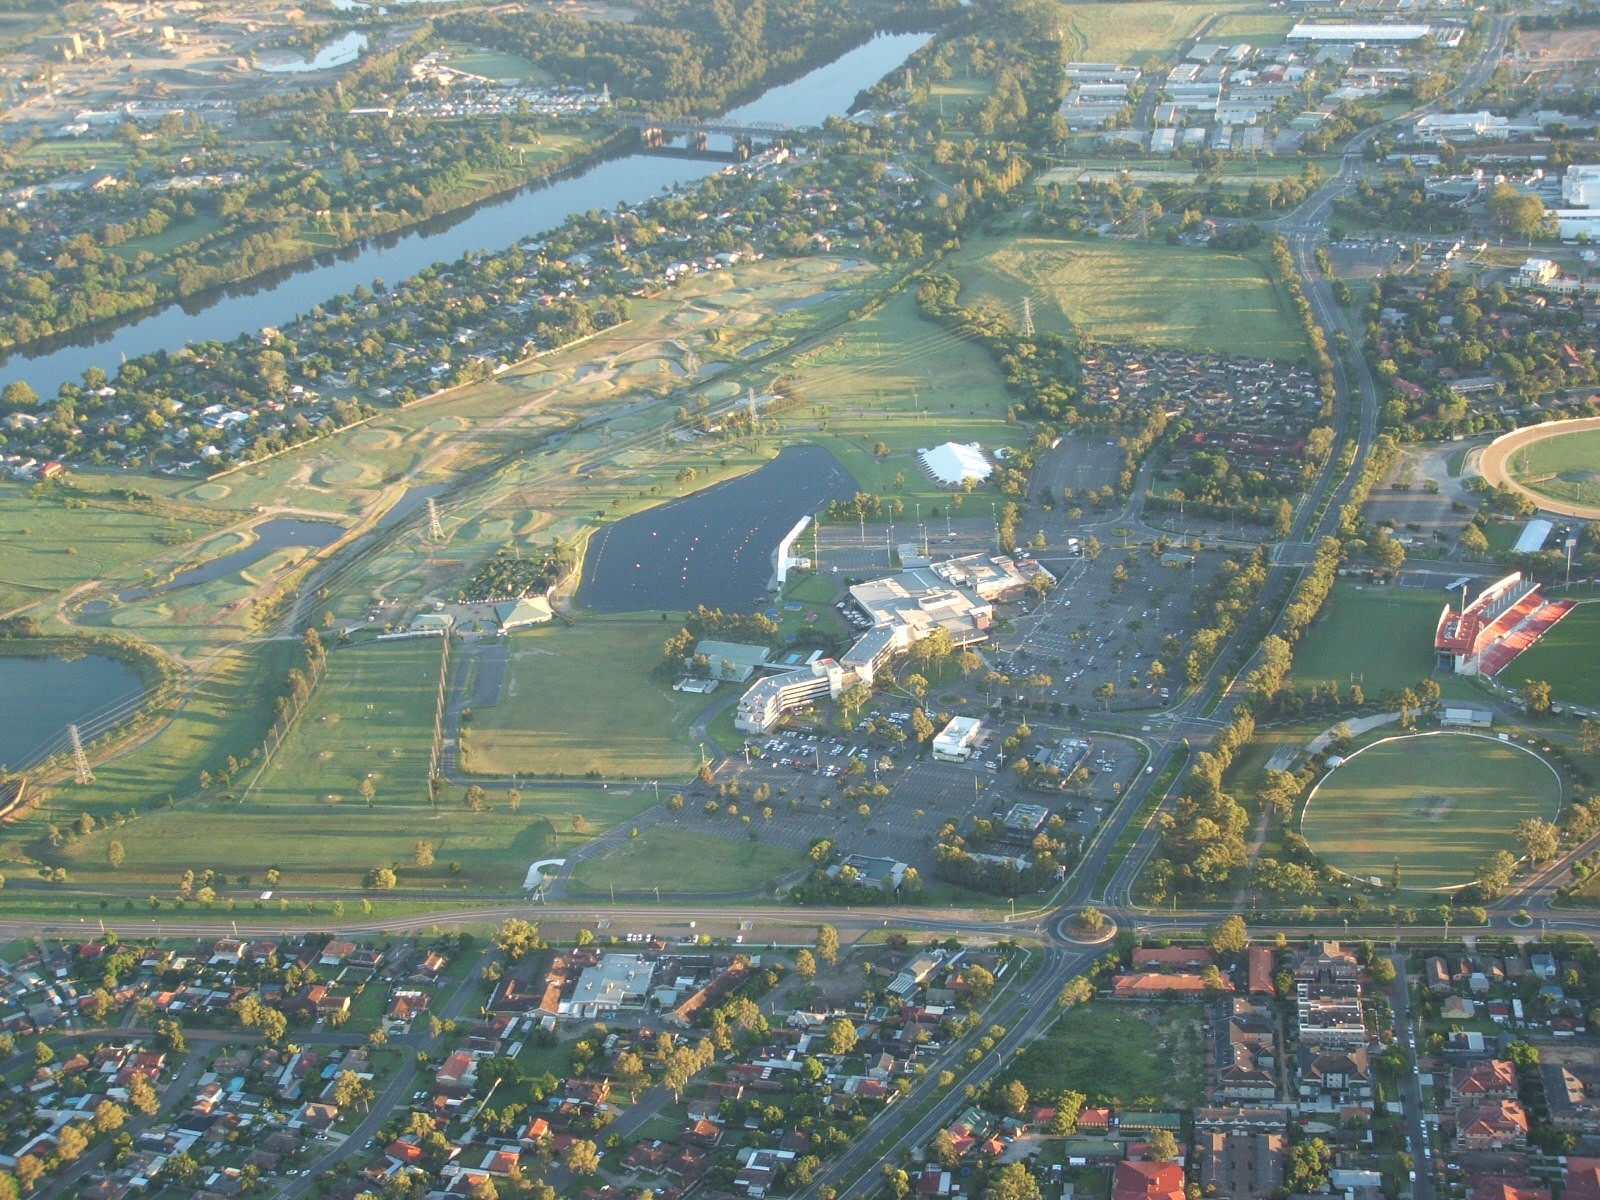 Panthers_club_aerial